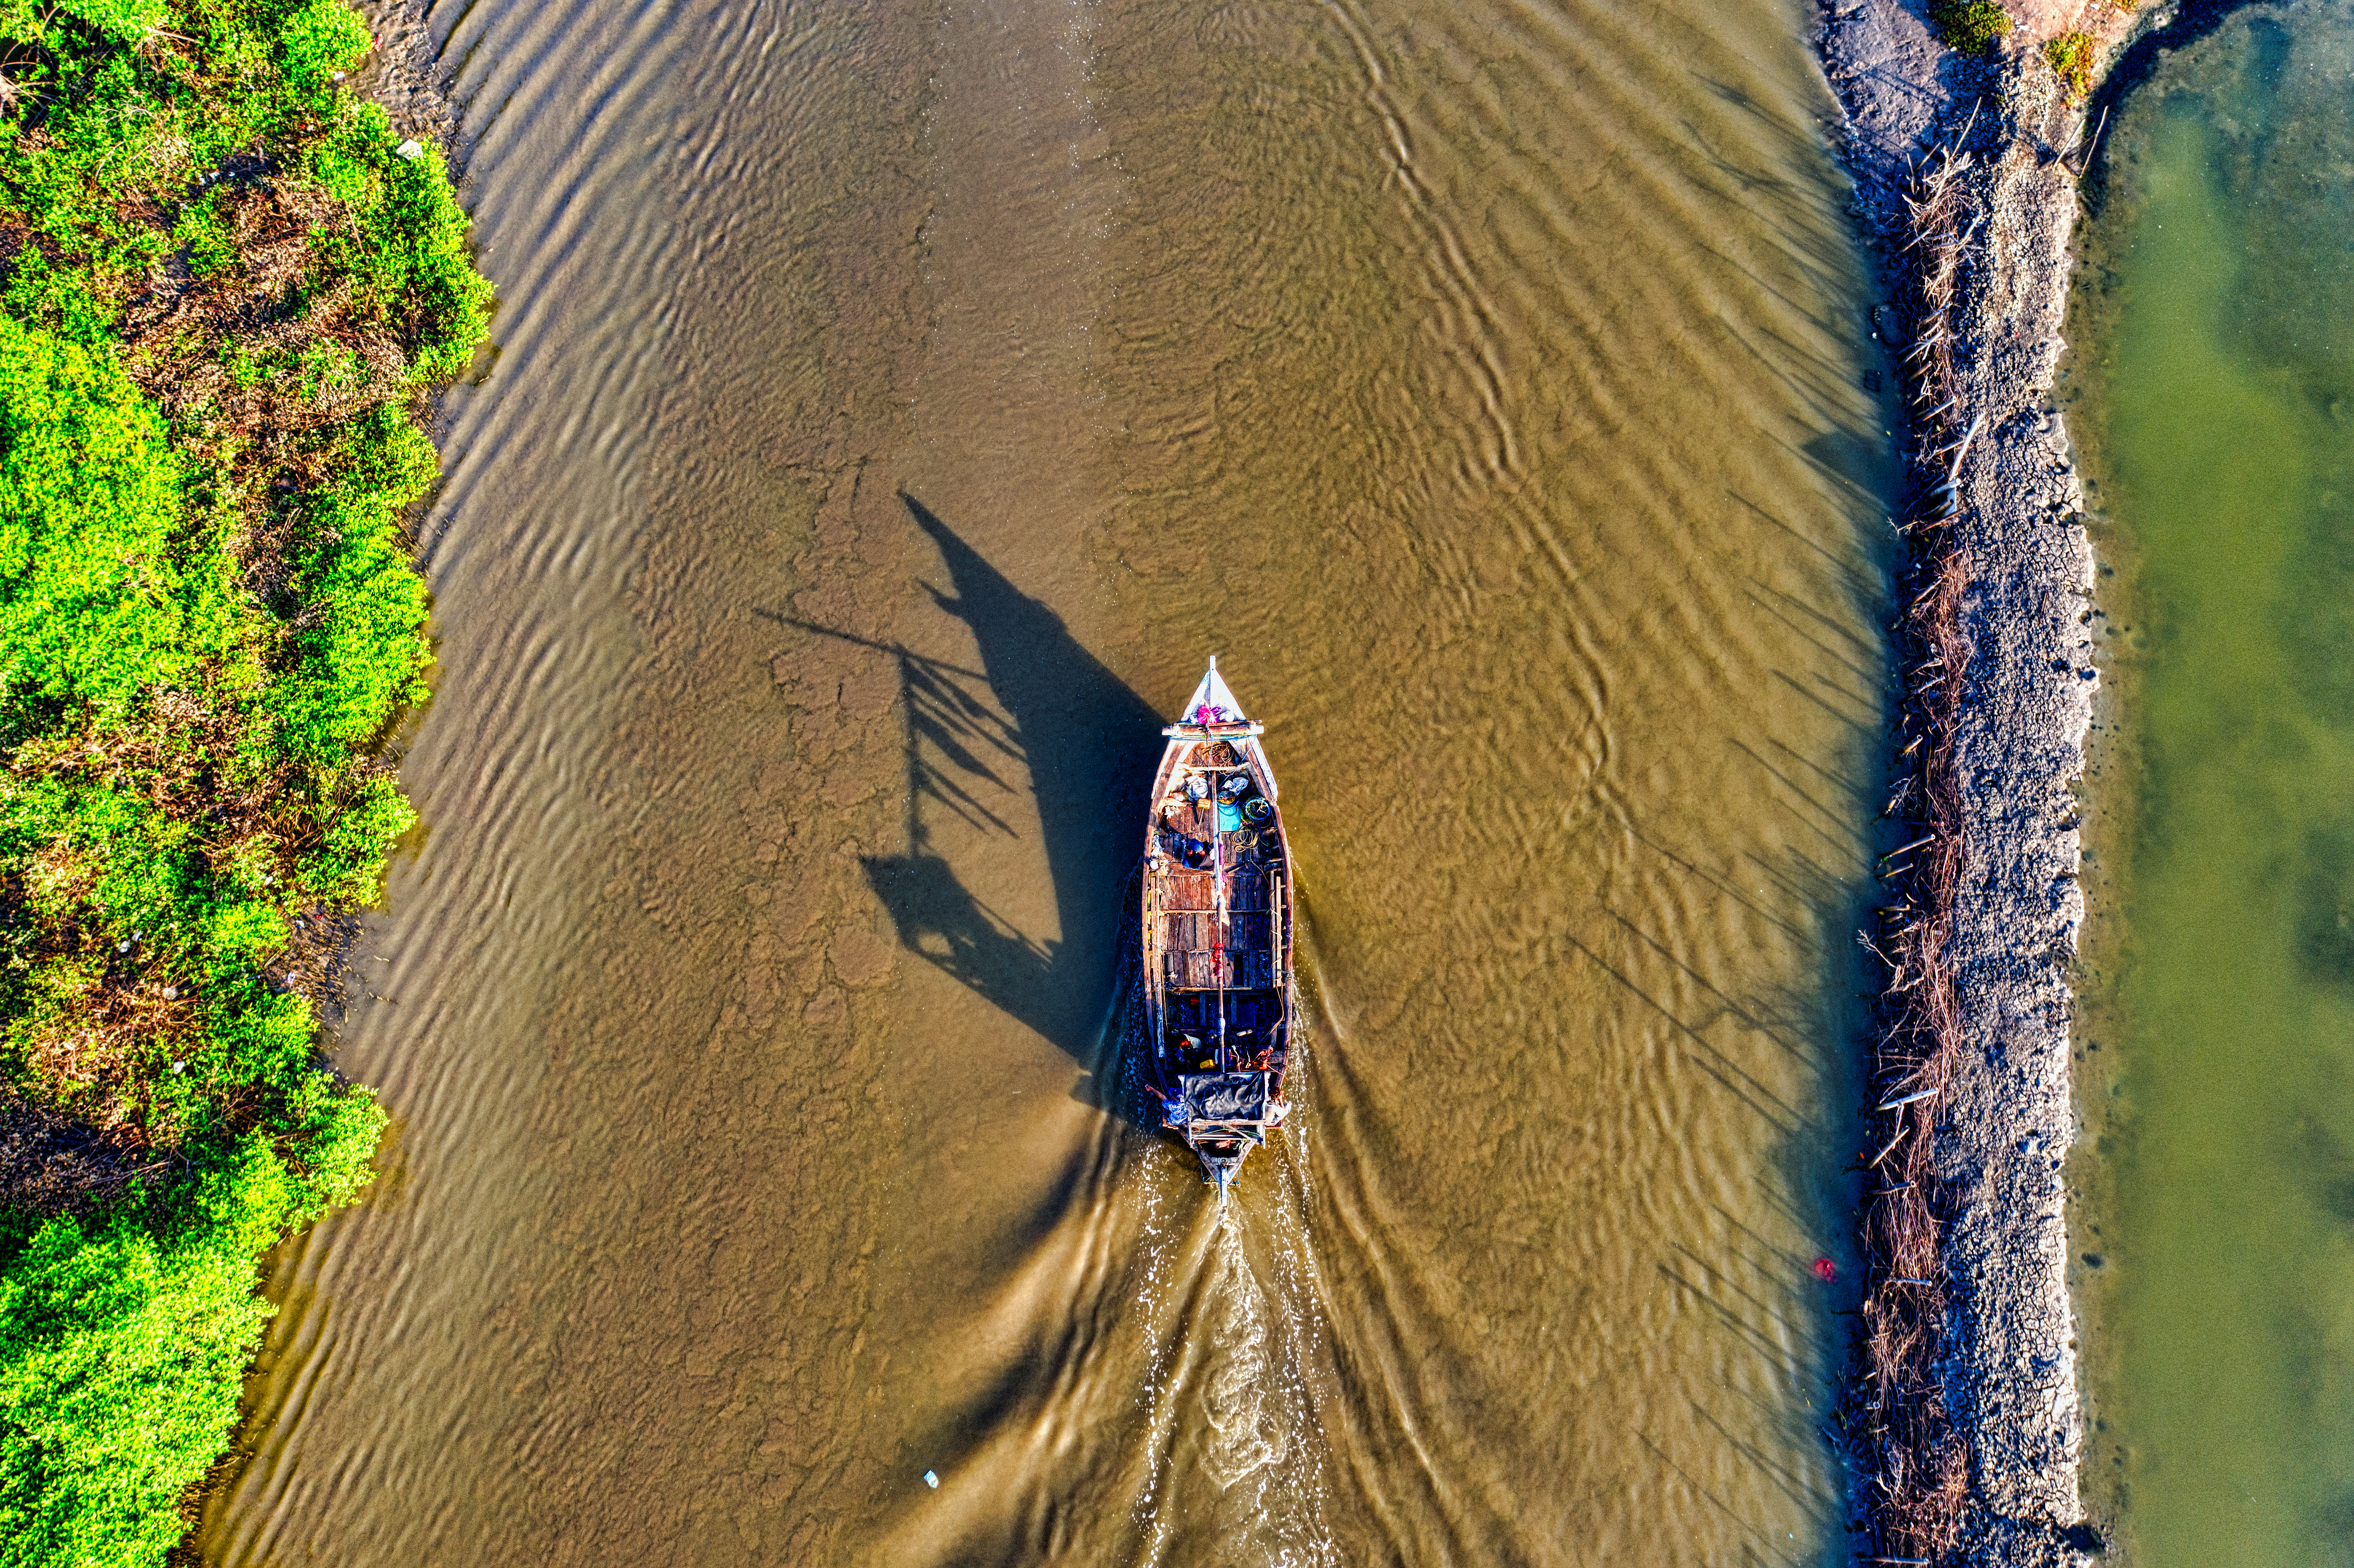 Top View Photo of Motor Boat on River